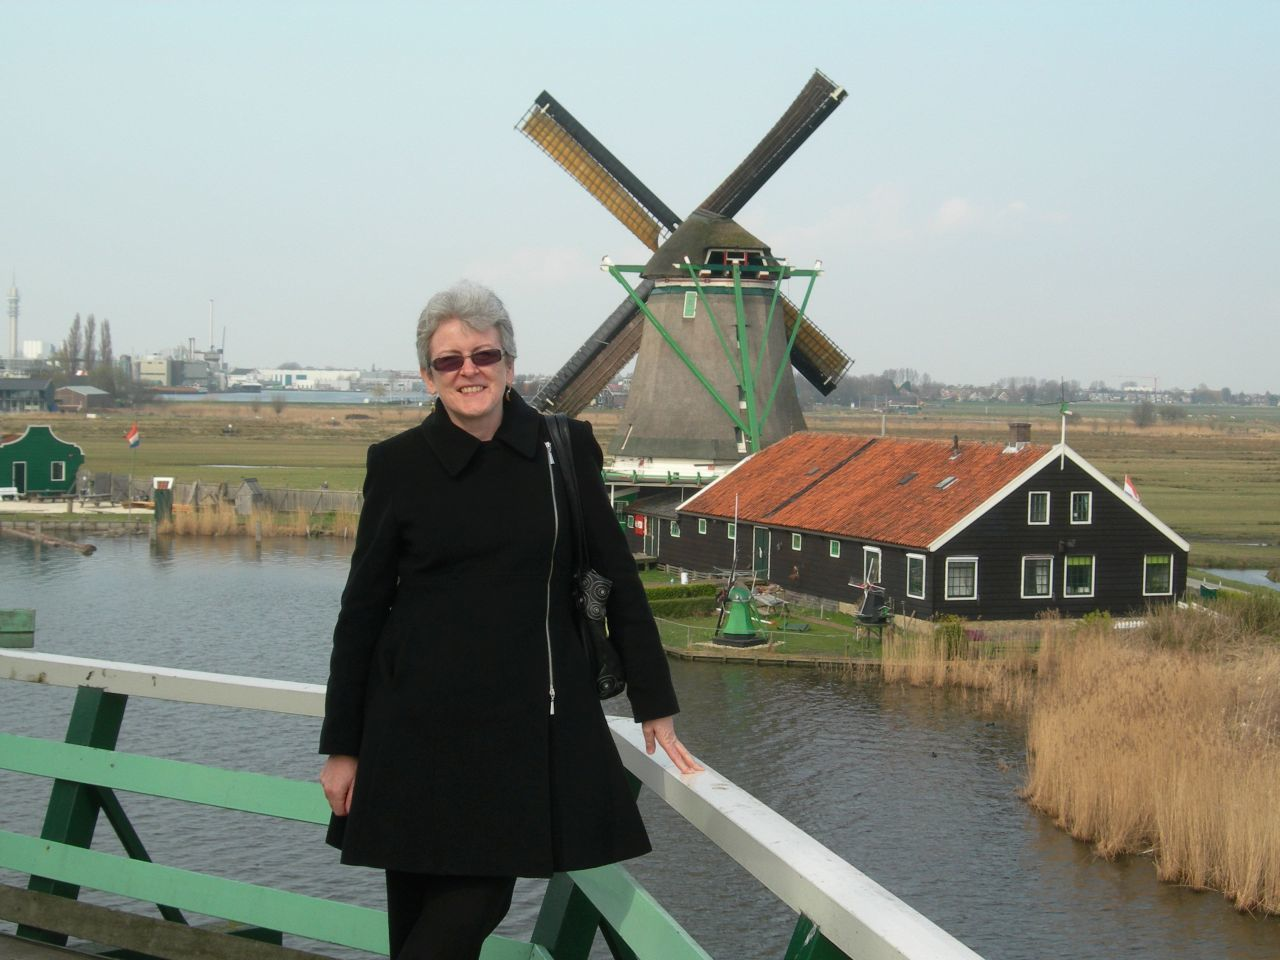 Anabel in the Netherlands.